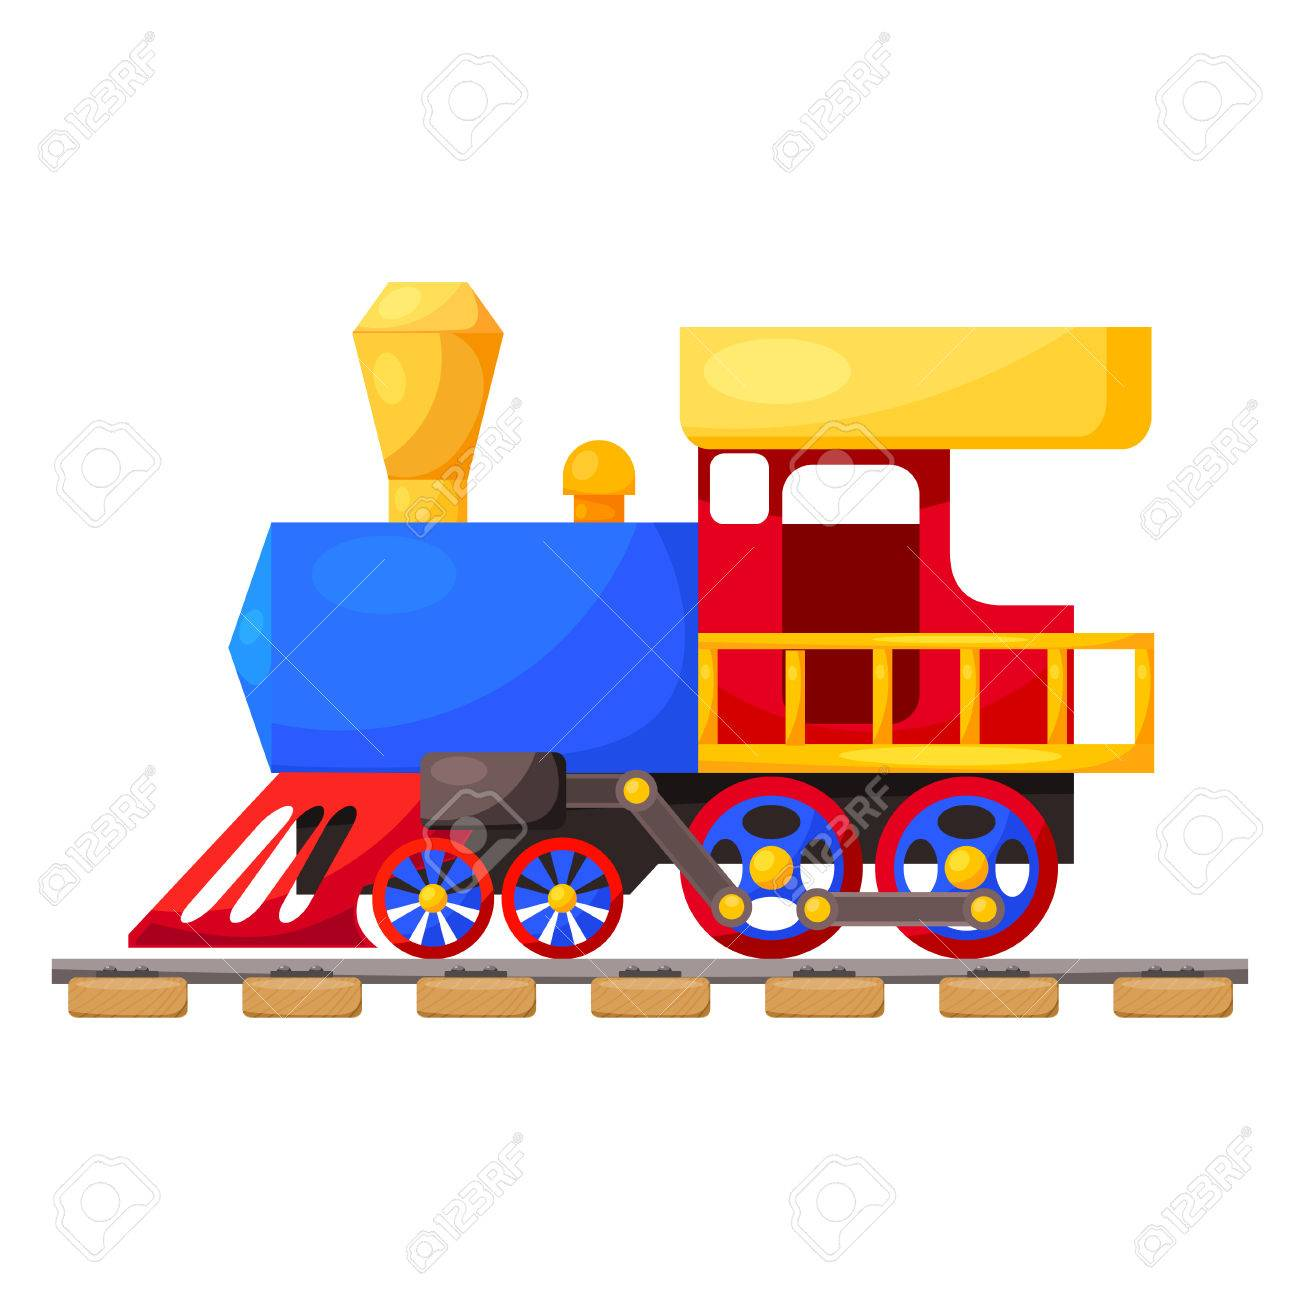 Red blue train on the railroad isolated on white background. Cartoon. Vector illustration. - 32186640